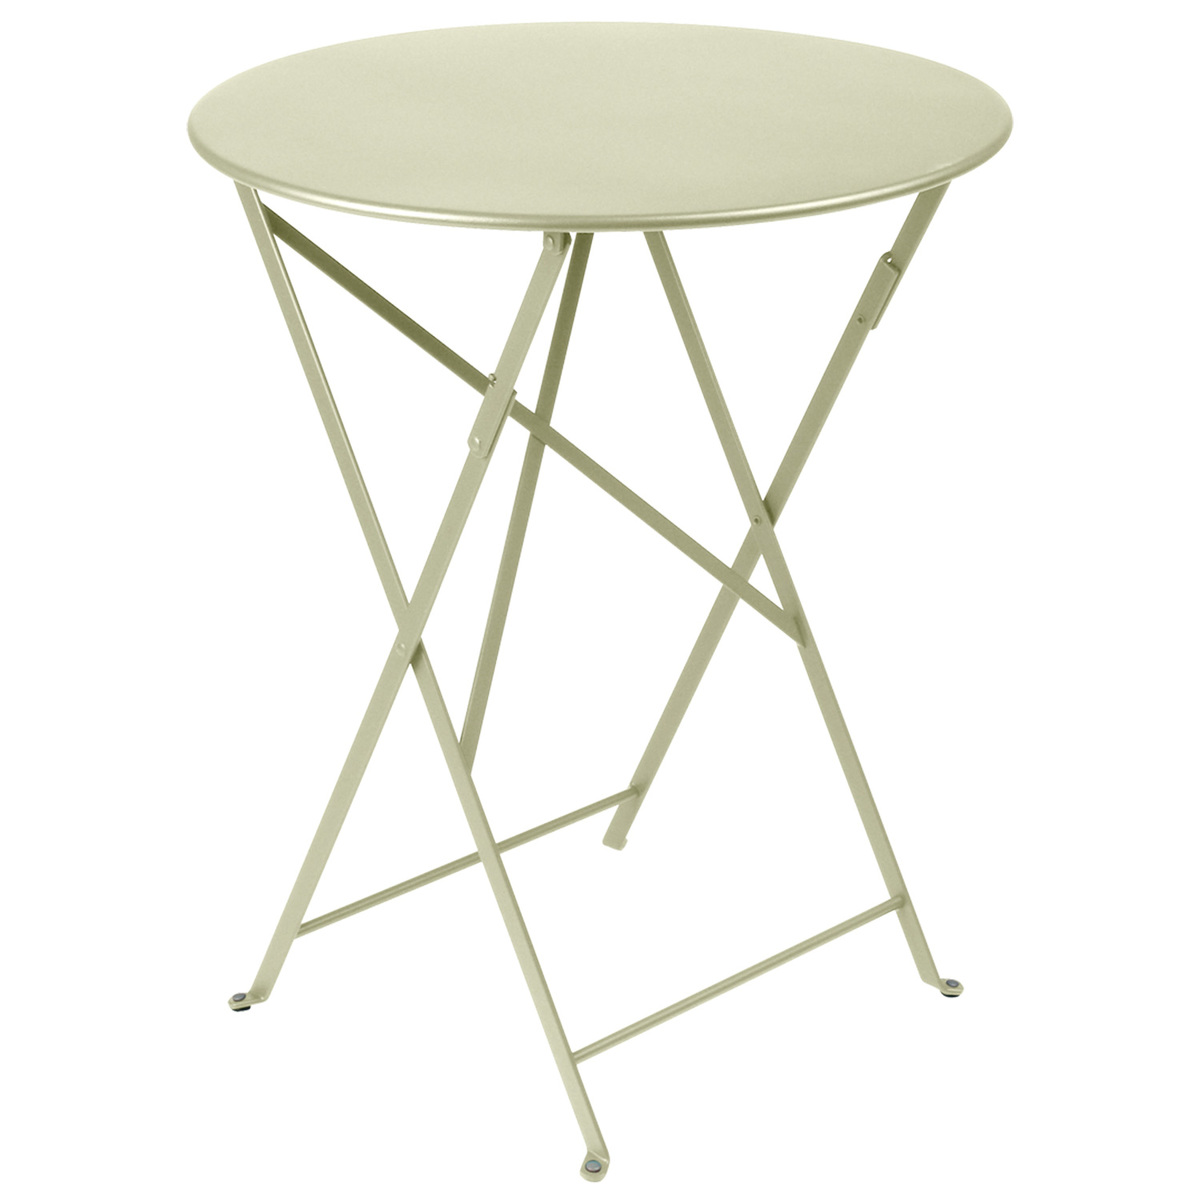 Fermob Bistro table 60 cm, willow green from Fermob